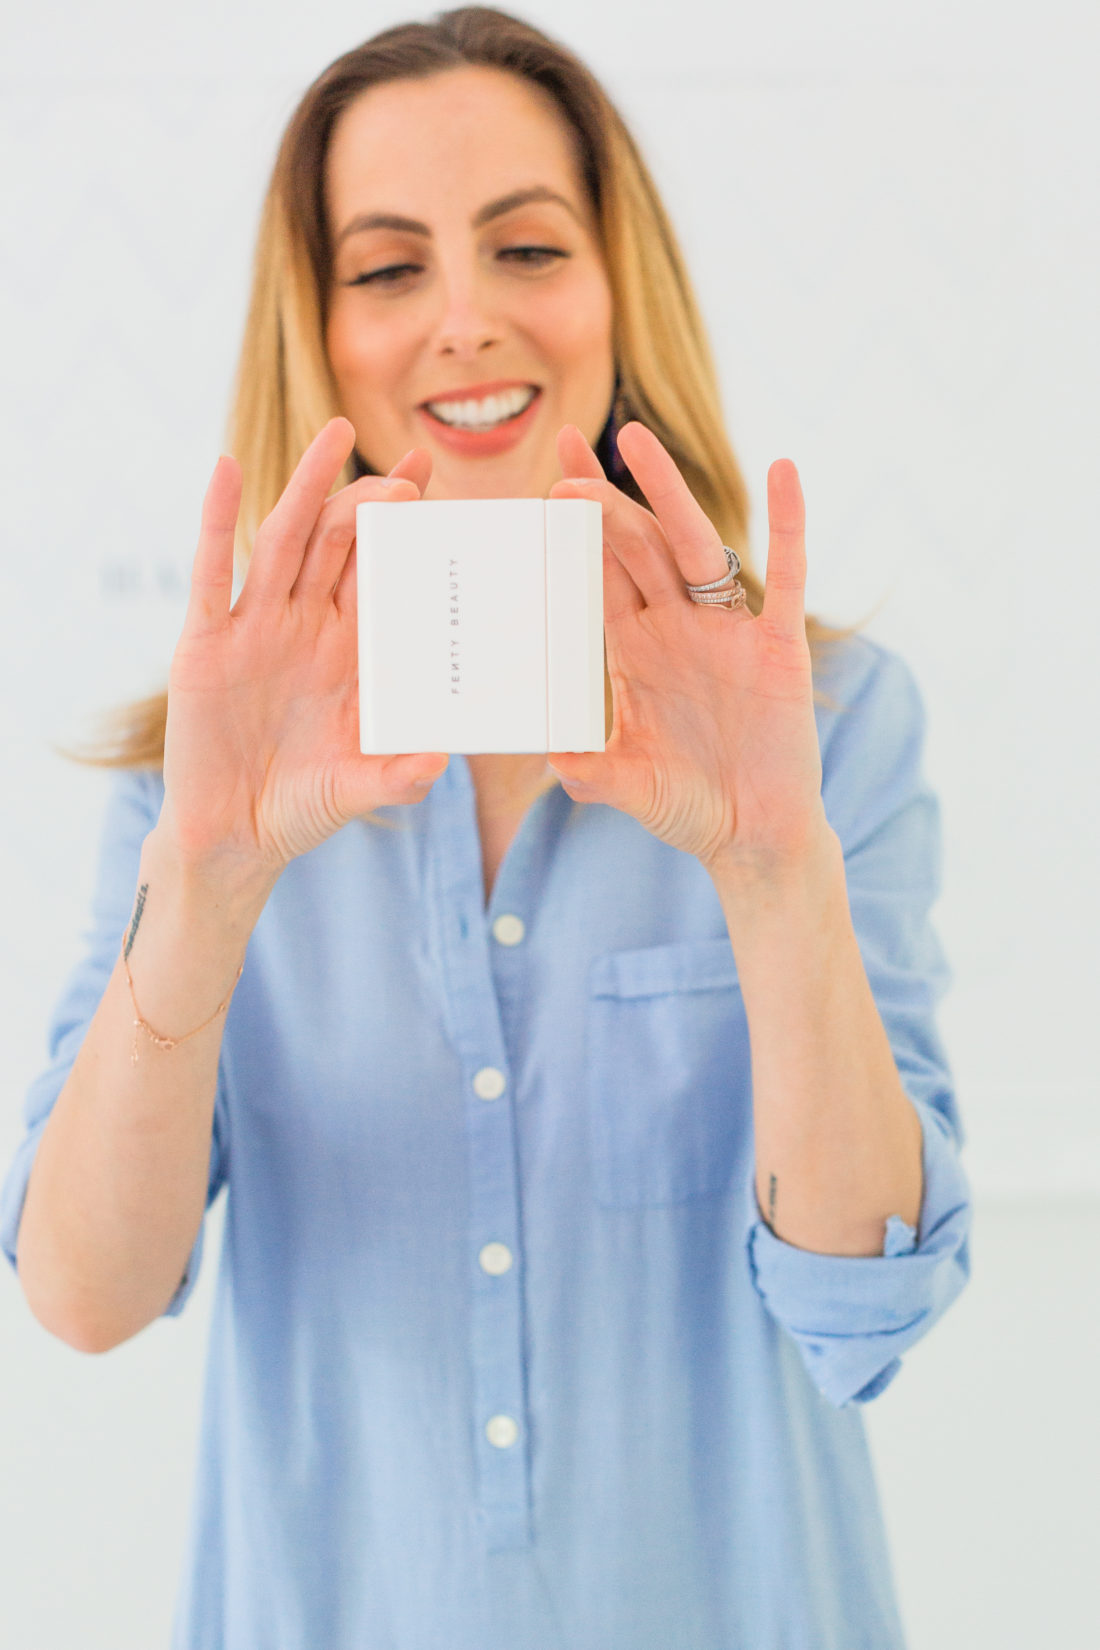 Eva Amurri Martino shows how her blotting powder case and brush case detach from one another